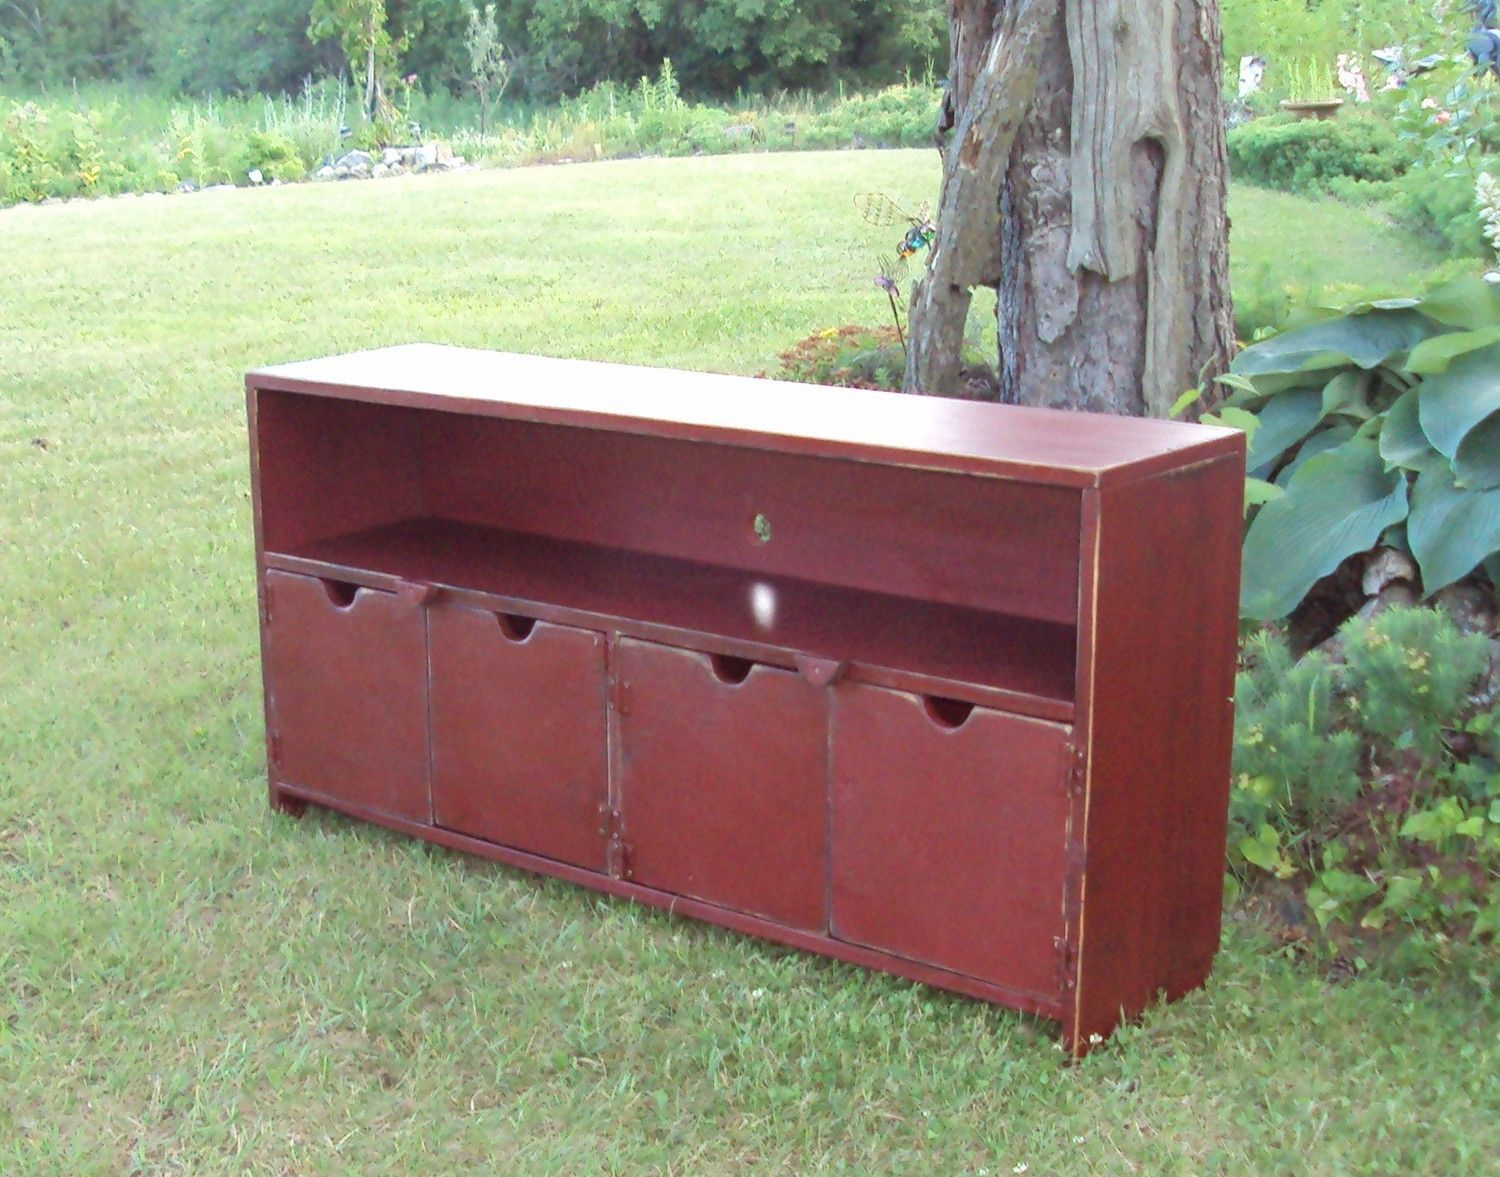 48 Inch Wide Barn Red Over Black SHABBY CHIC TV Cabinet Storage Benchu2026